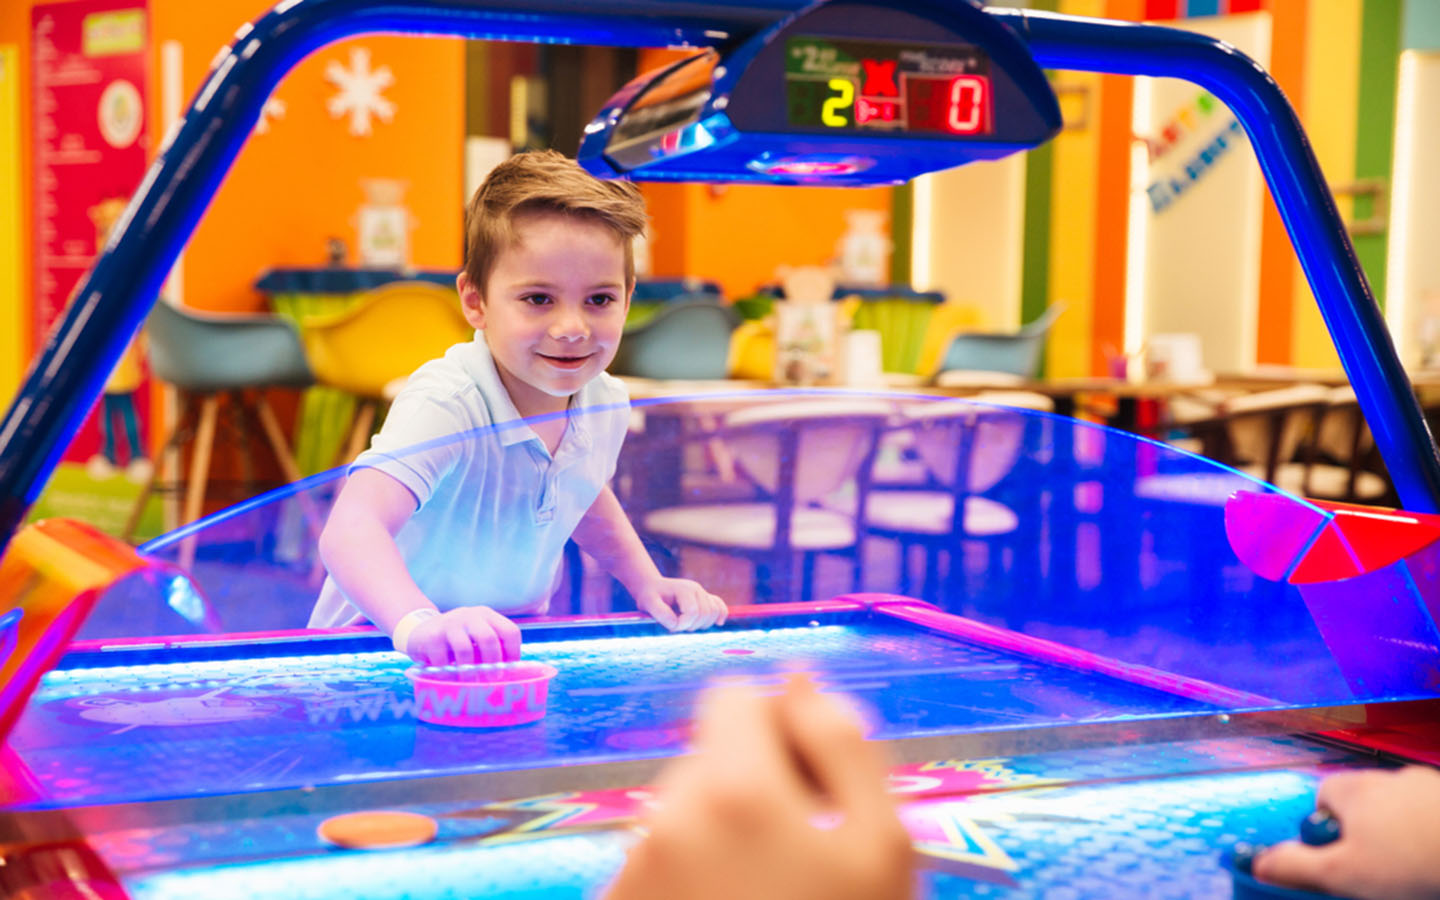 Air hockey at Dubai Magic Planet